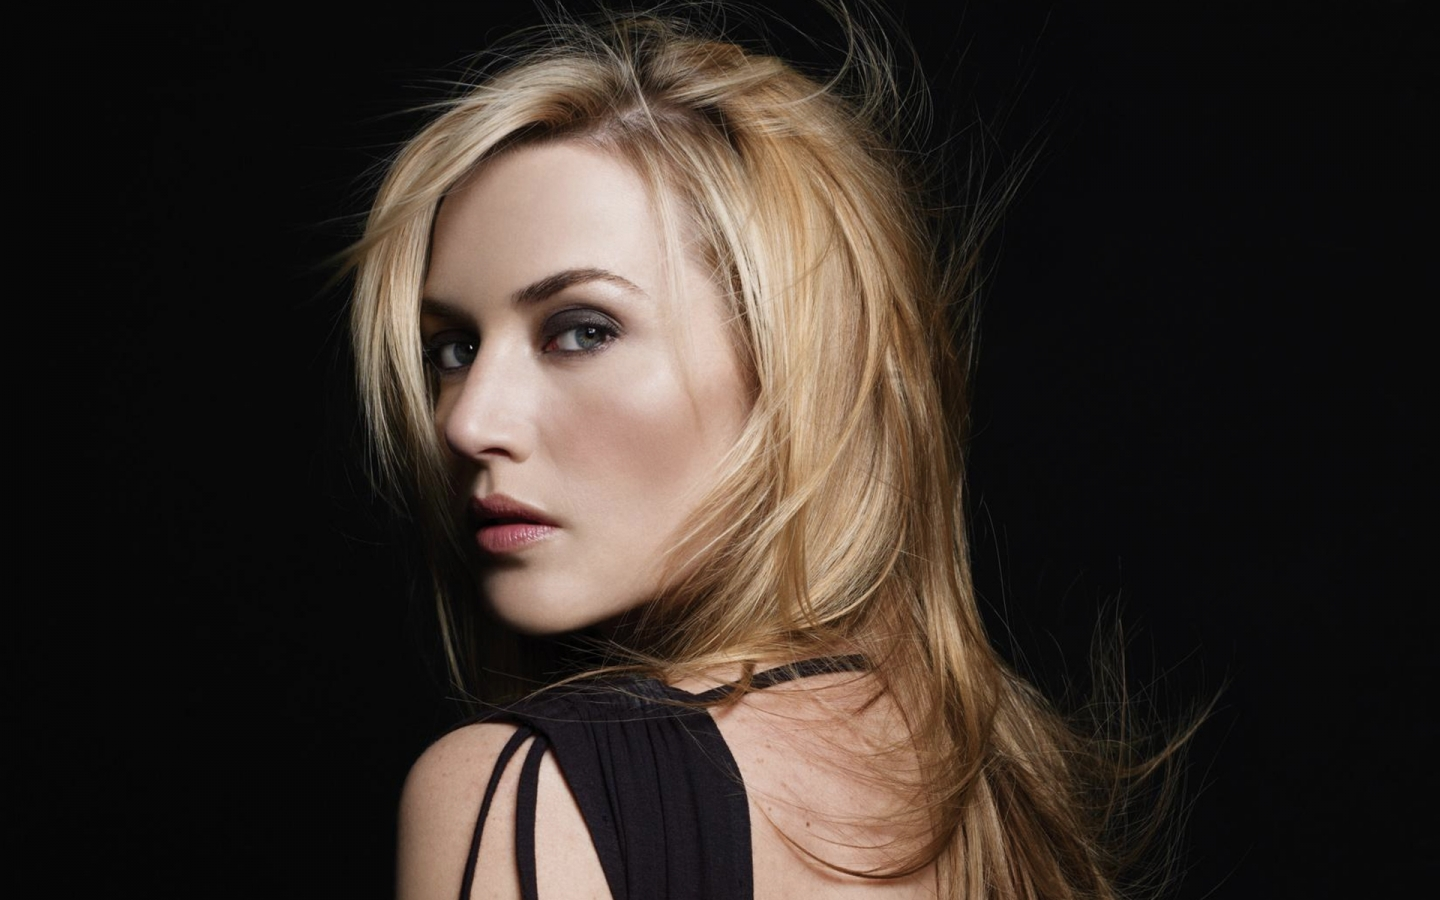 Kate Winslet - 1440x900